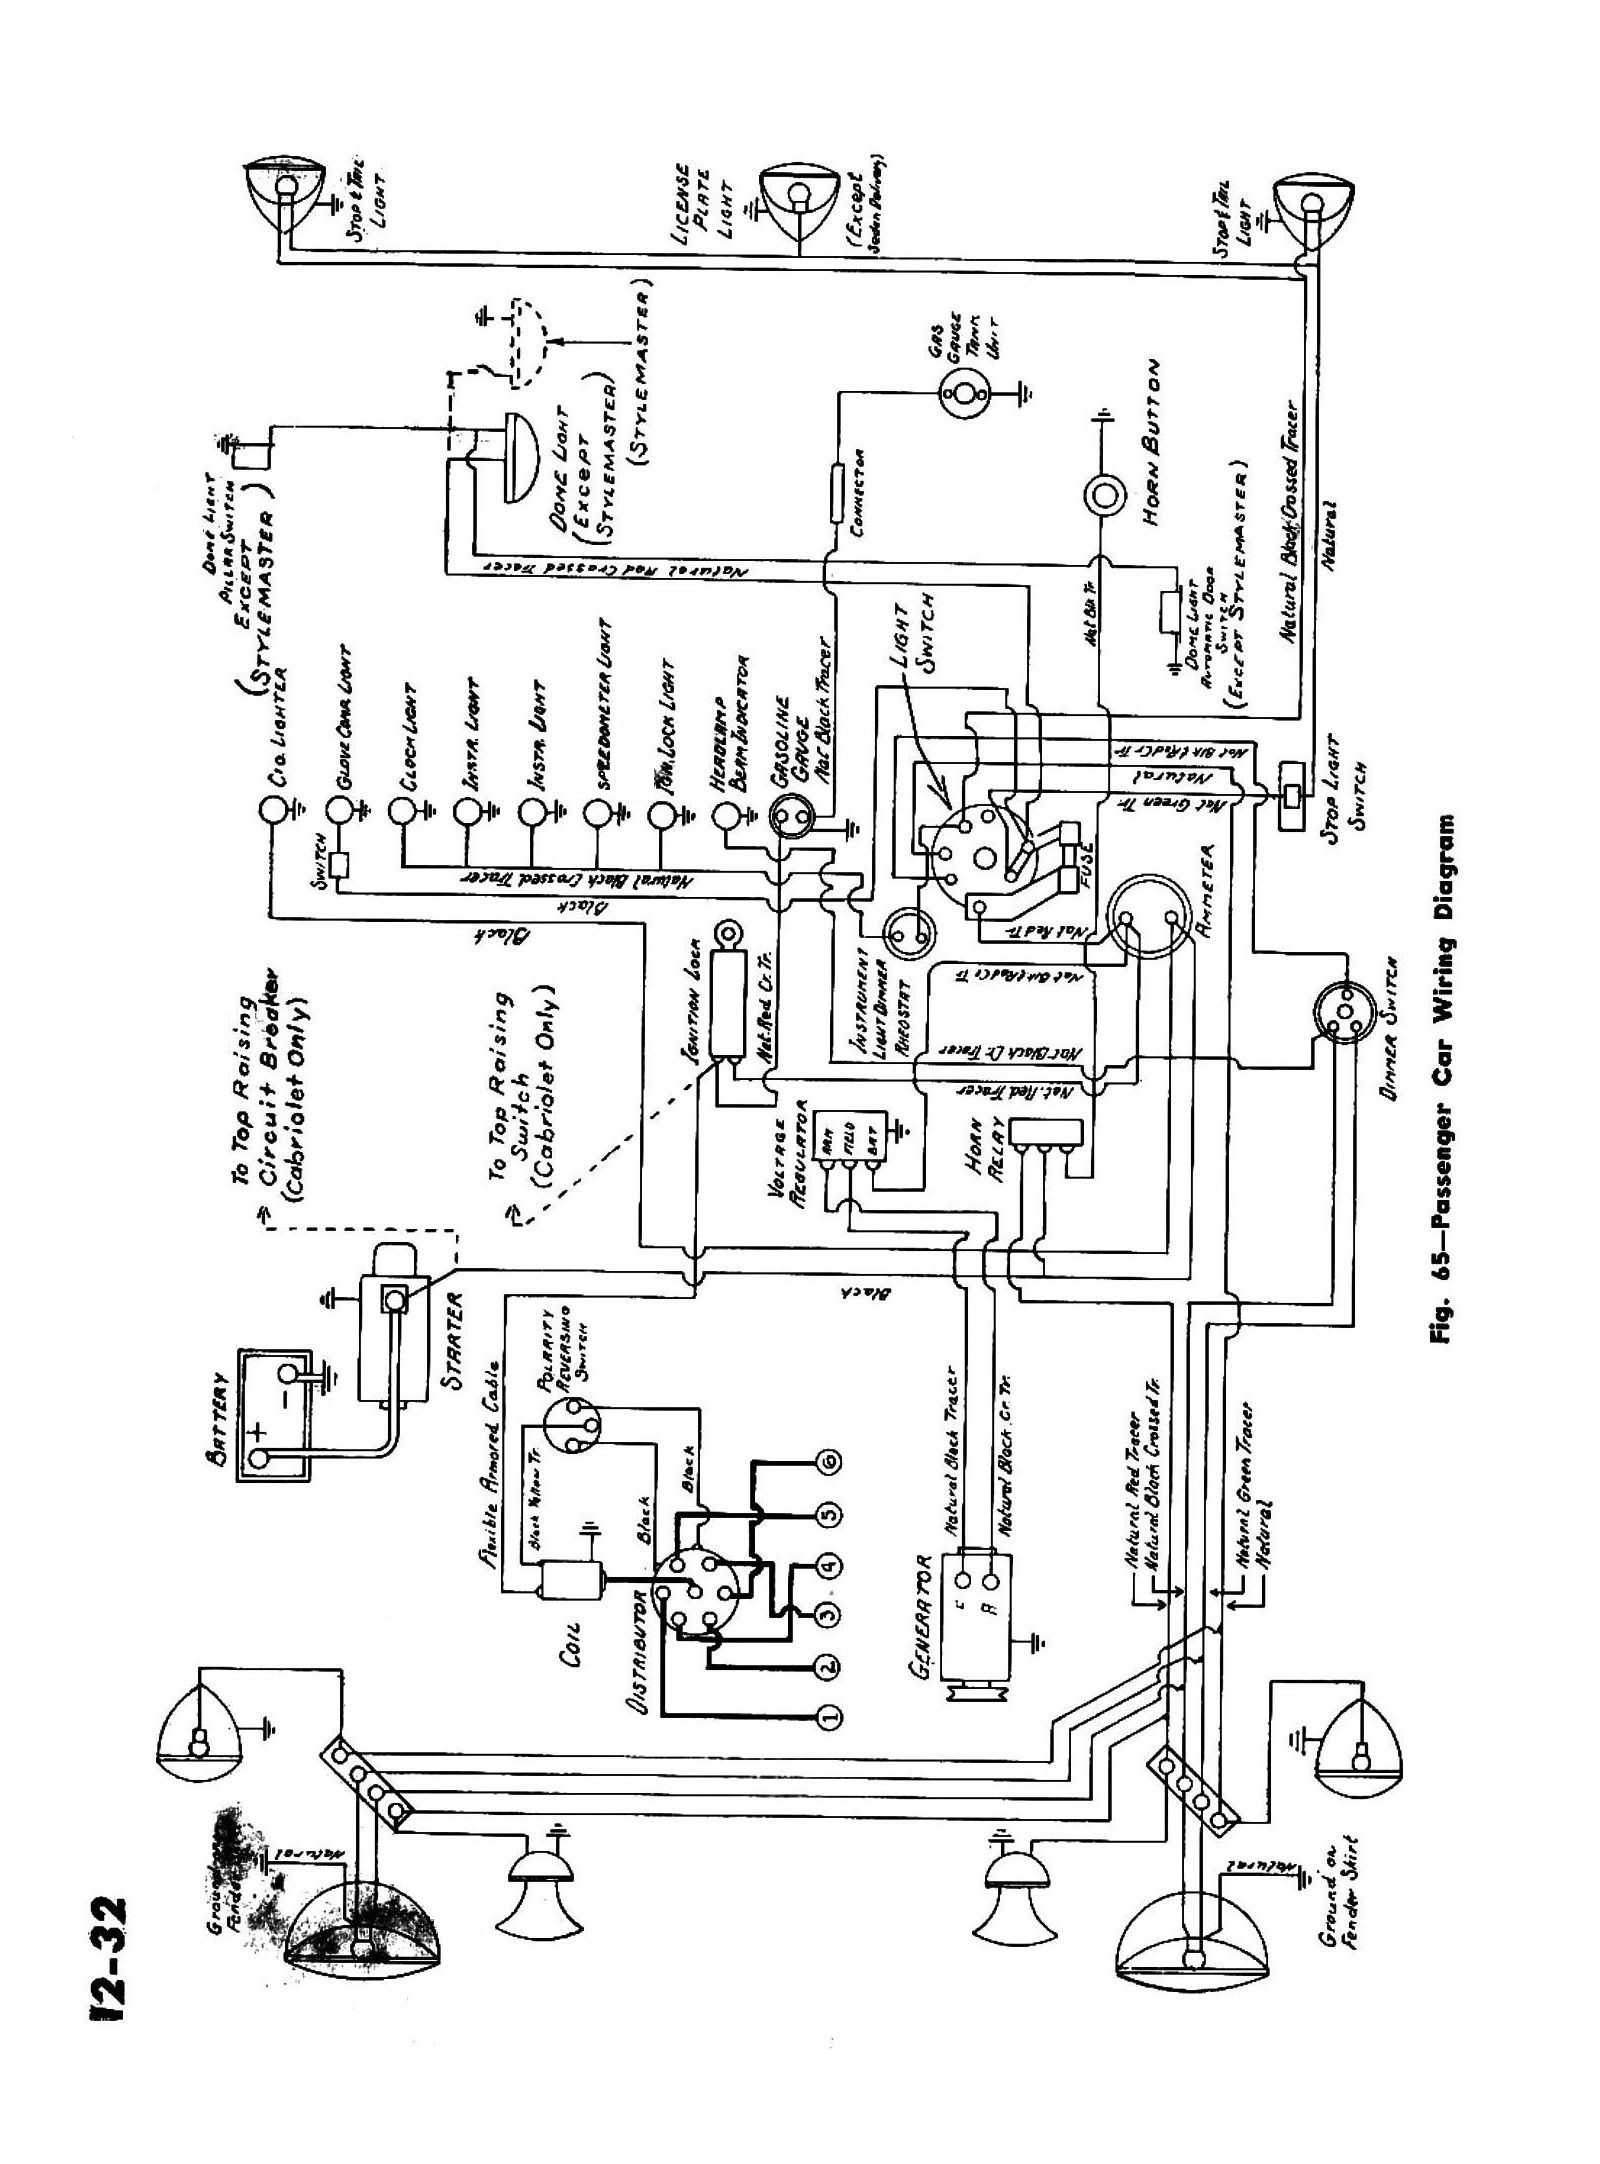 1941 chevy truck wiring harness